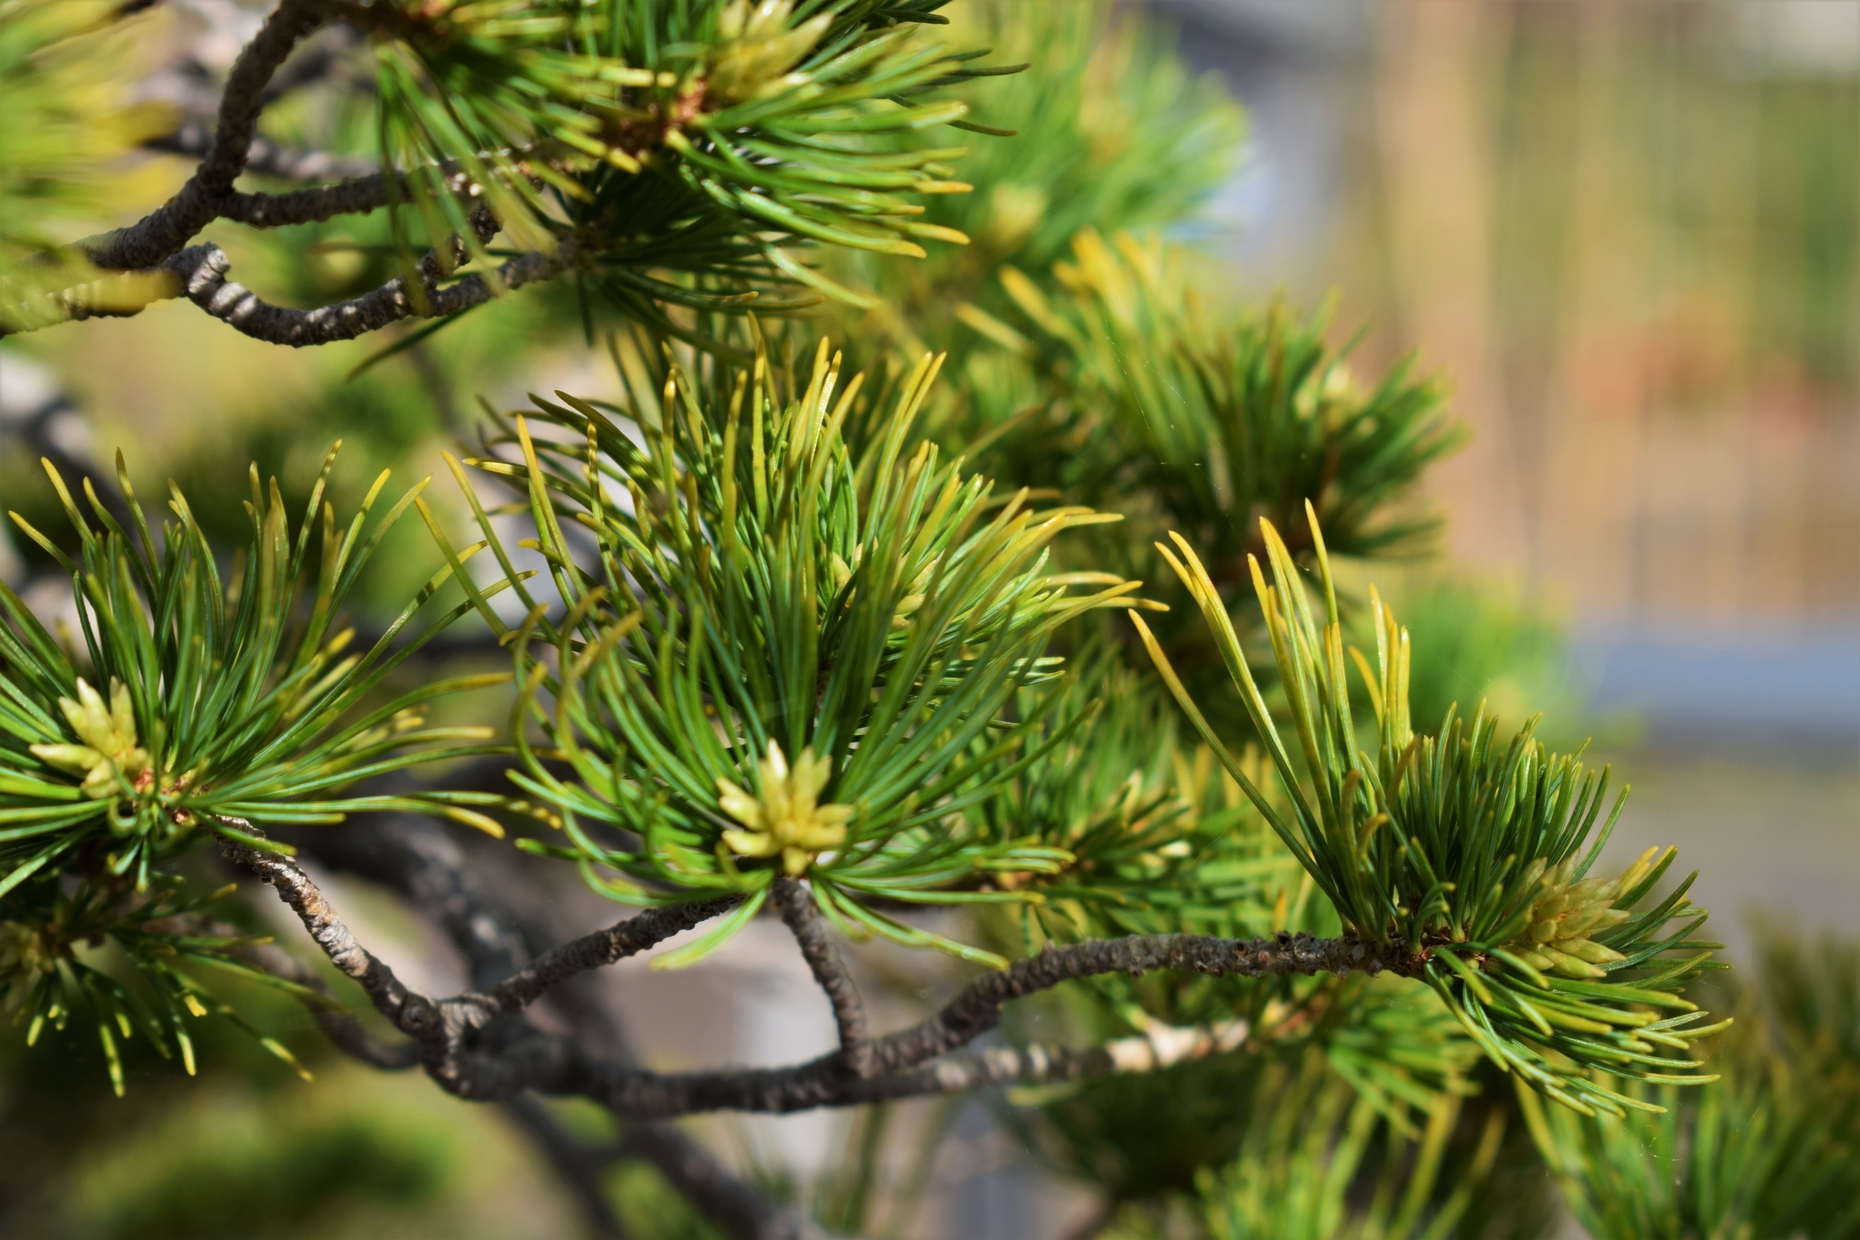 Japanese white pine, close up